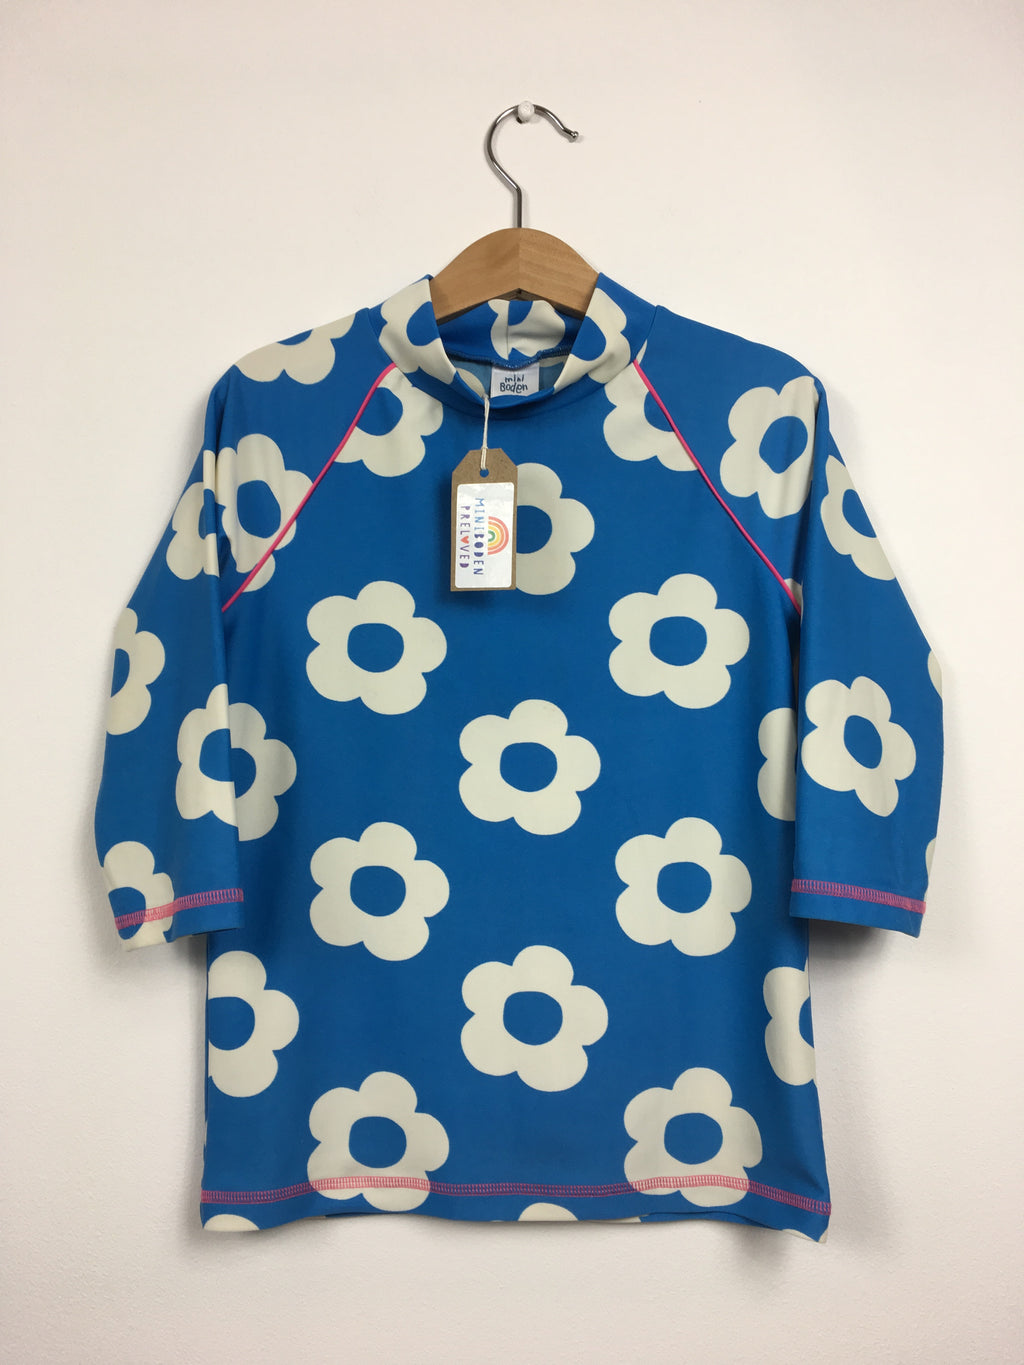 Big Flower Print Rash Vest (6-7 Years)